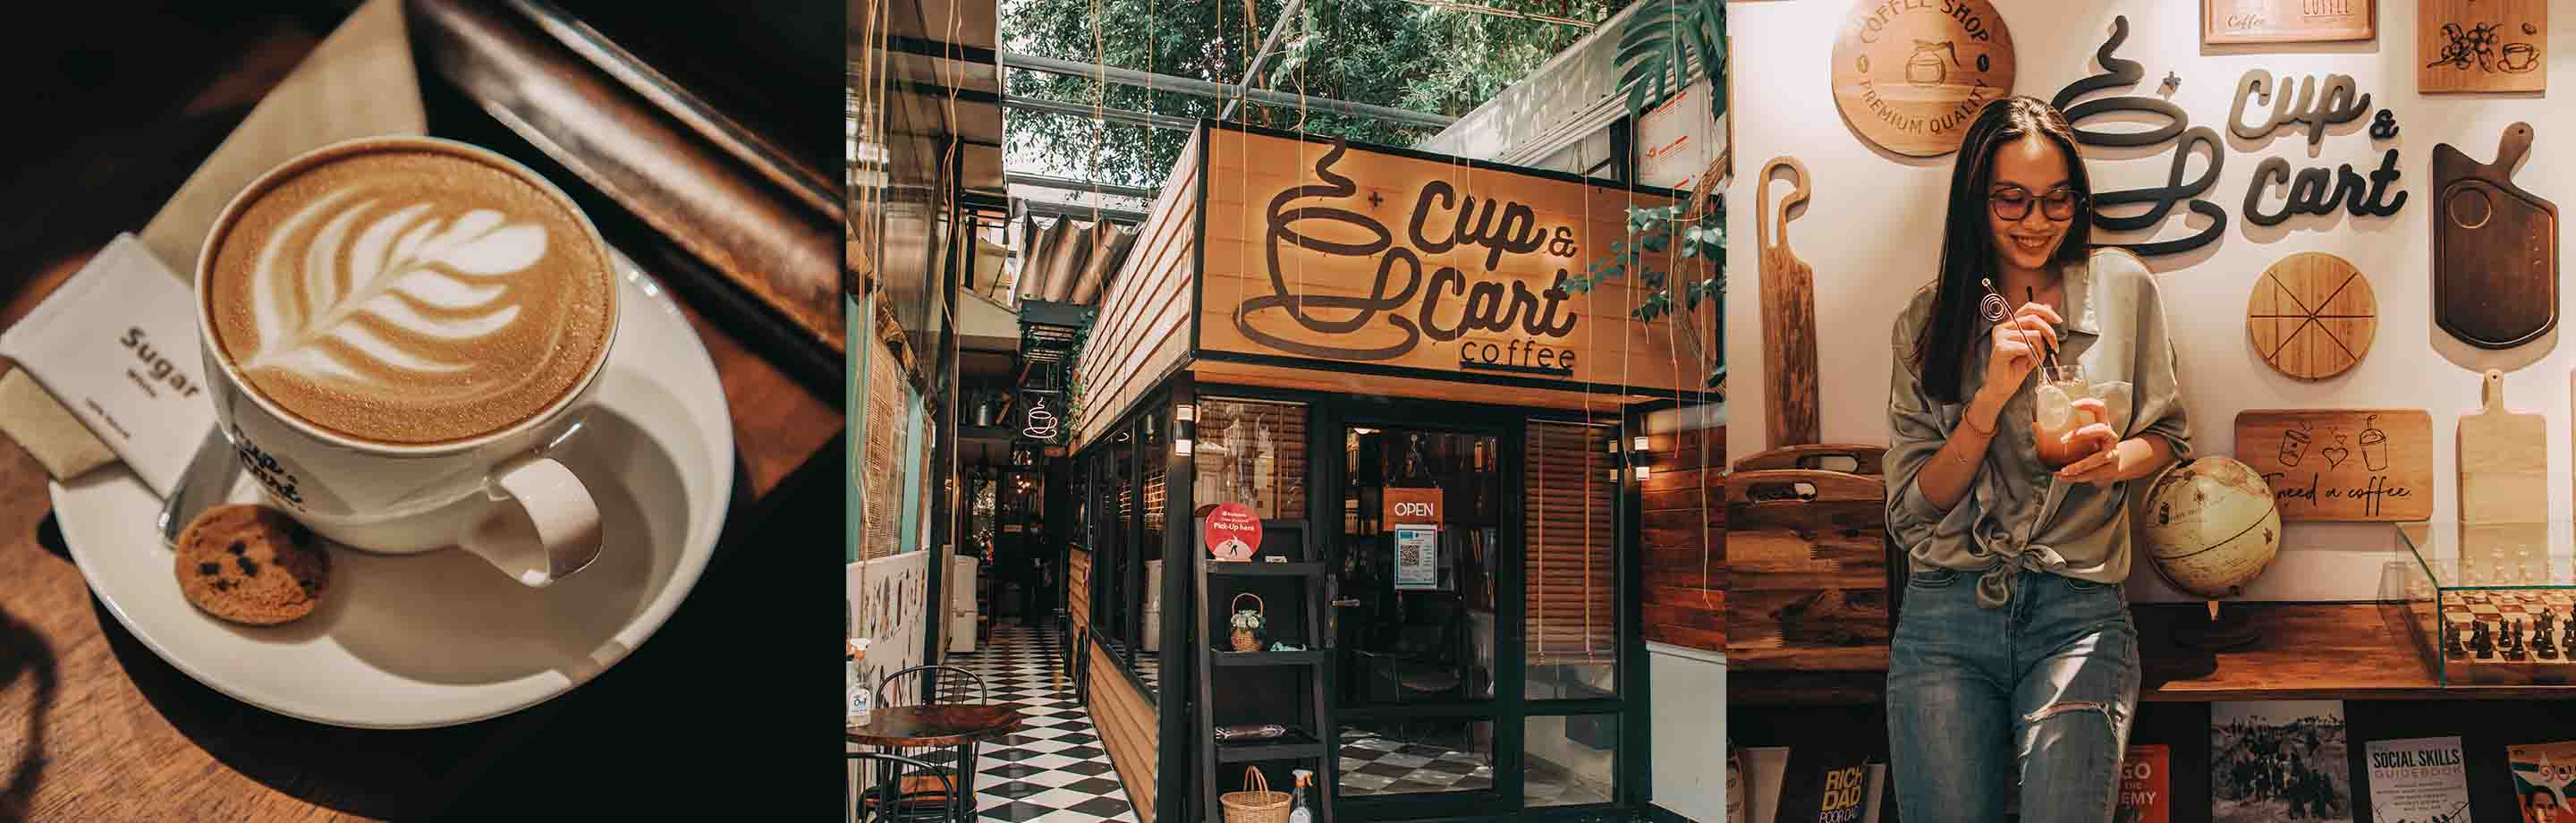 Cup & Cart Coffee